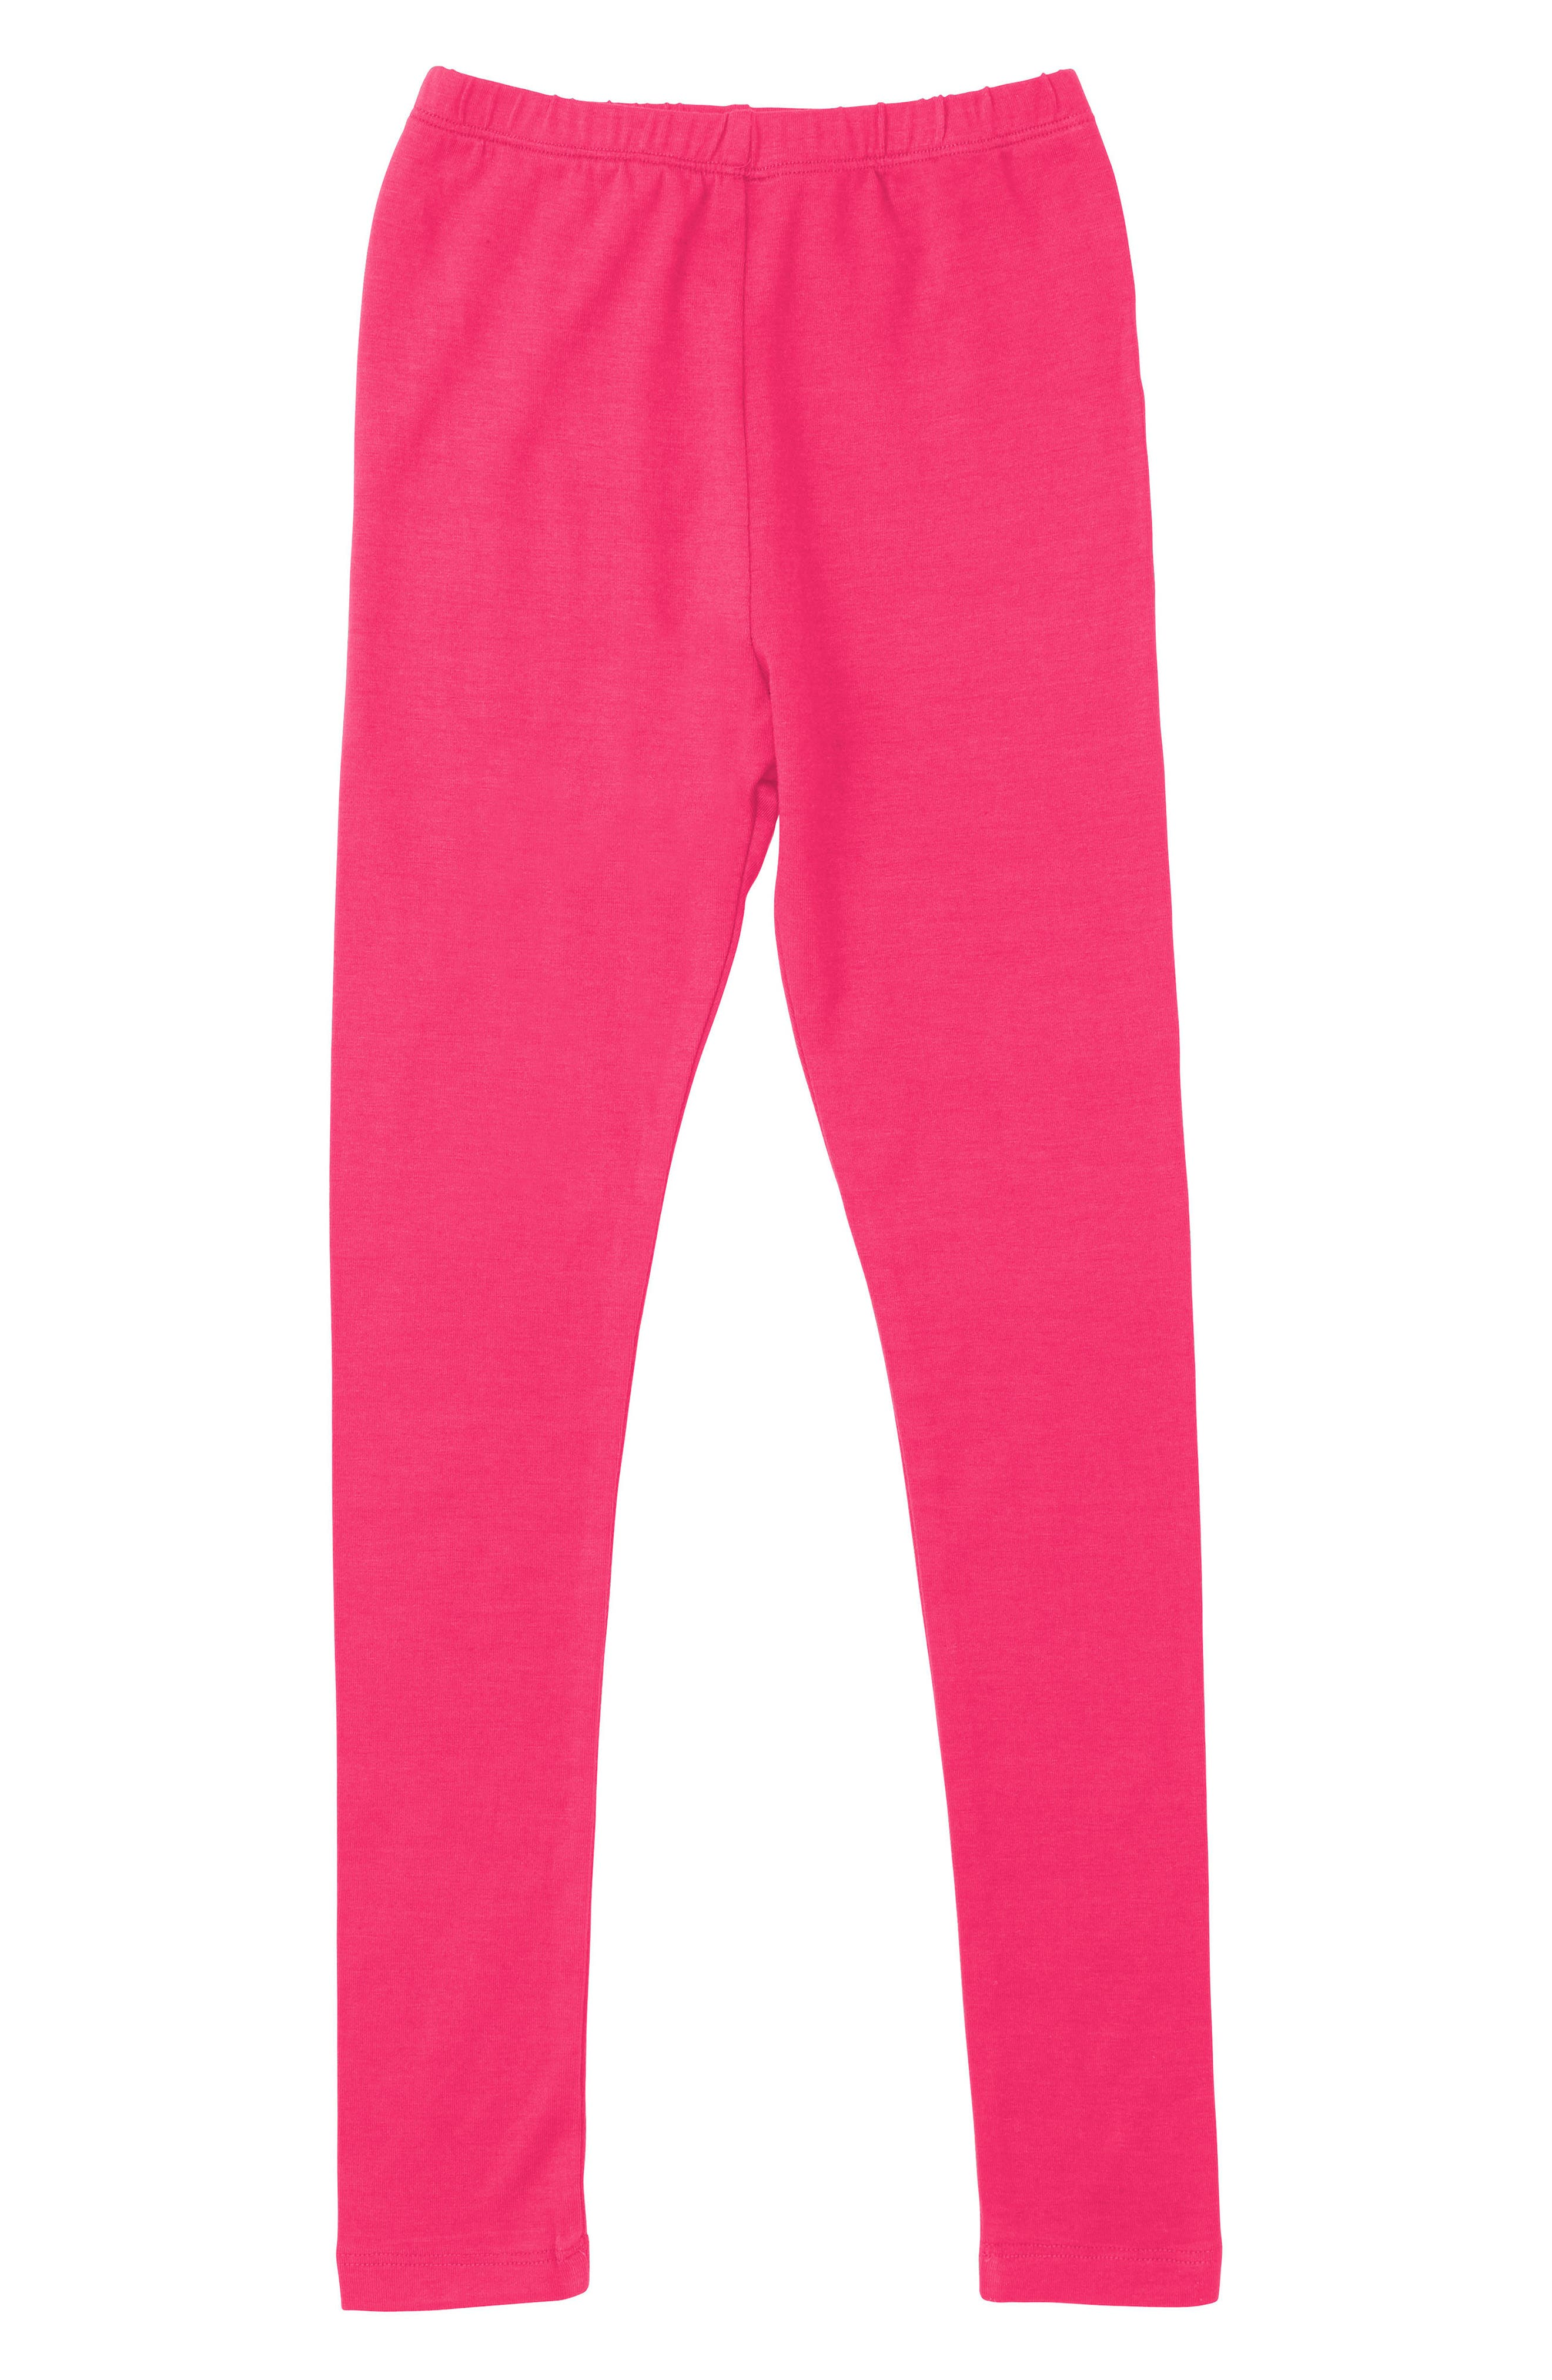 Stretch Cotton Leggings,                         Main,                         color, Pink